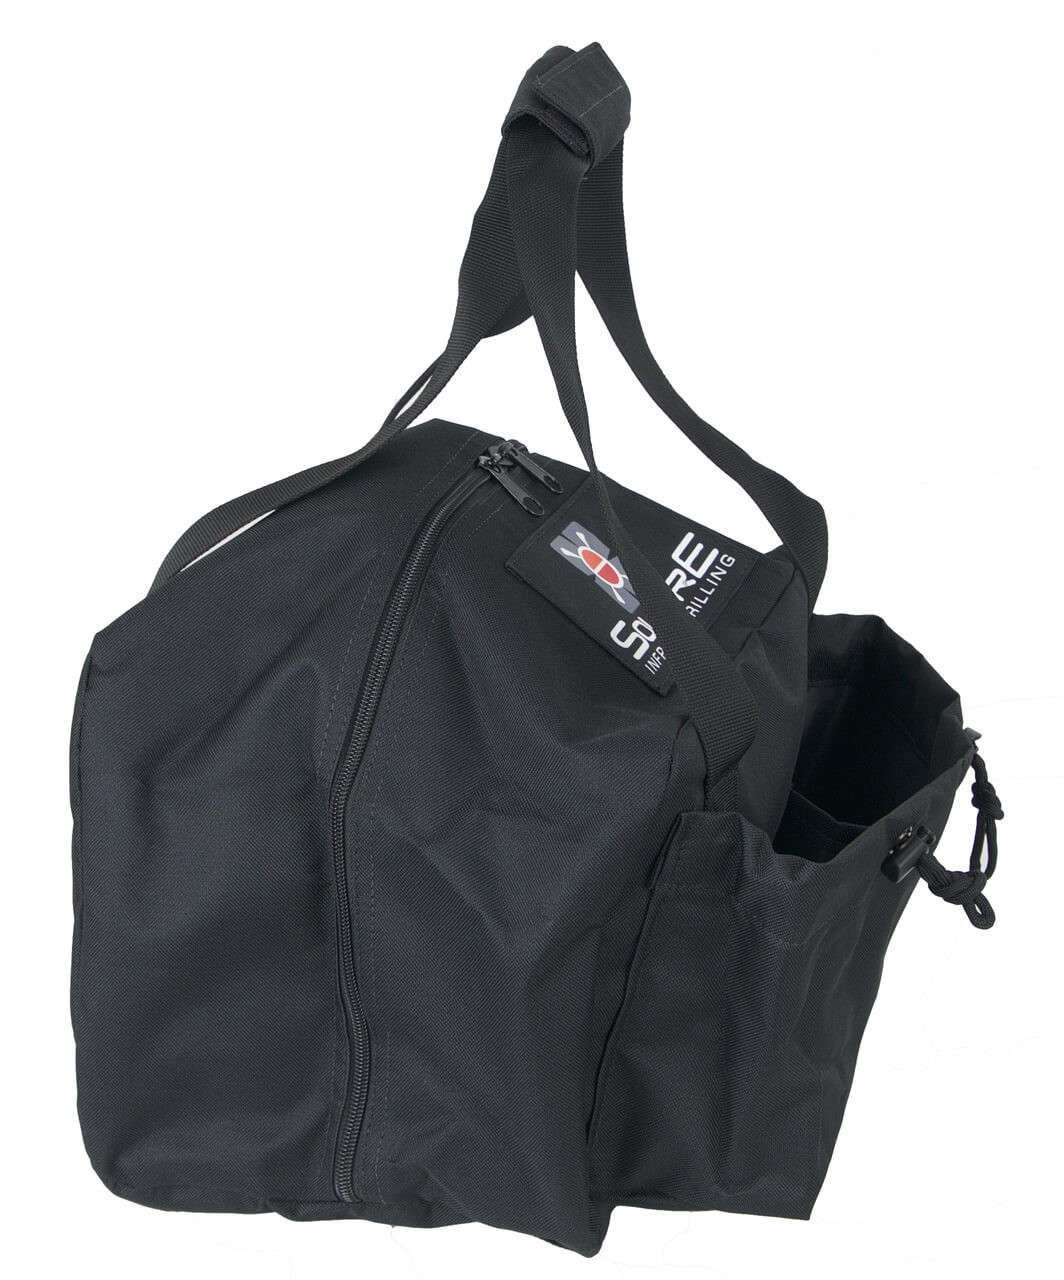 Carrying Bag for Solaire Mini, Side view